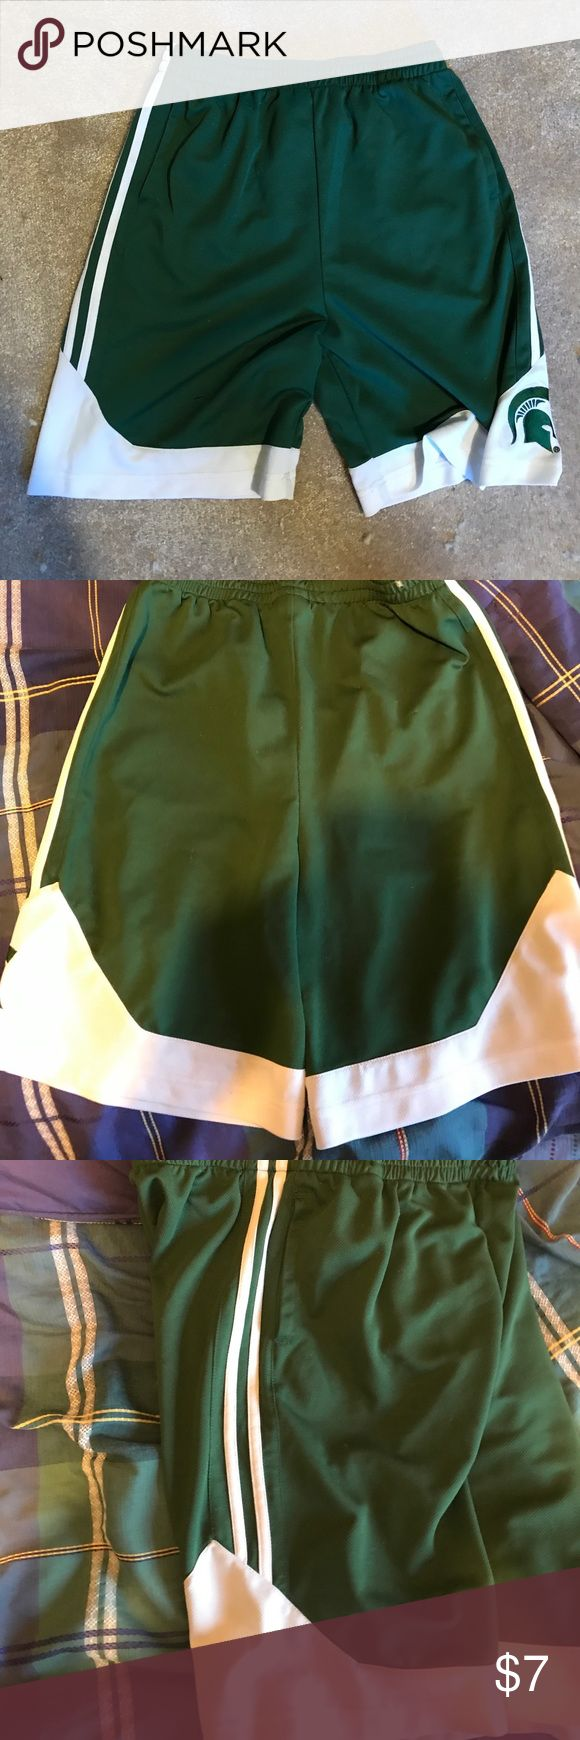 Michigan State Basketball Shorts Loved these shorts to wear to the gym Outerstuff Shorts Athletic